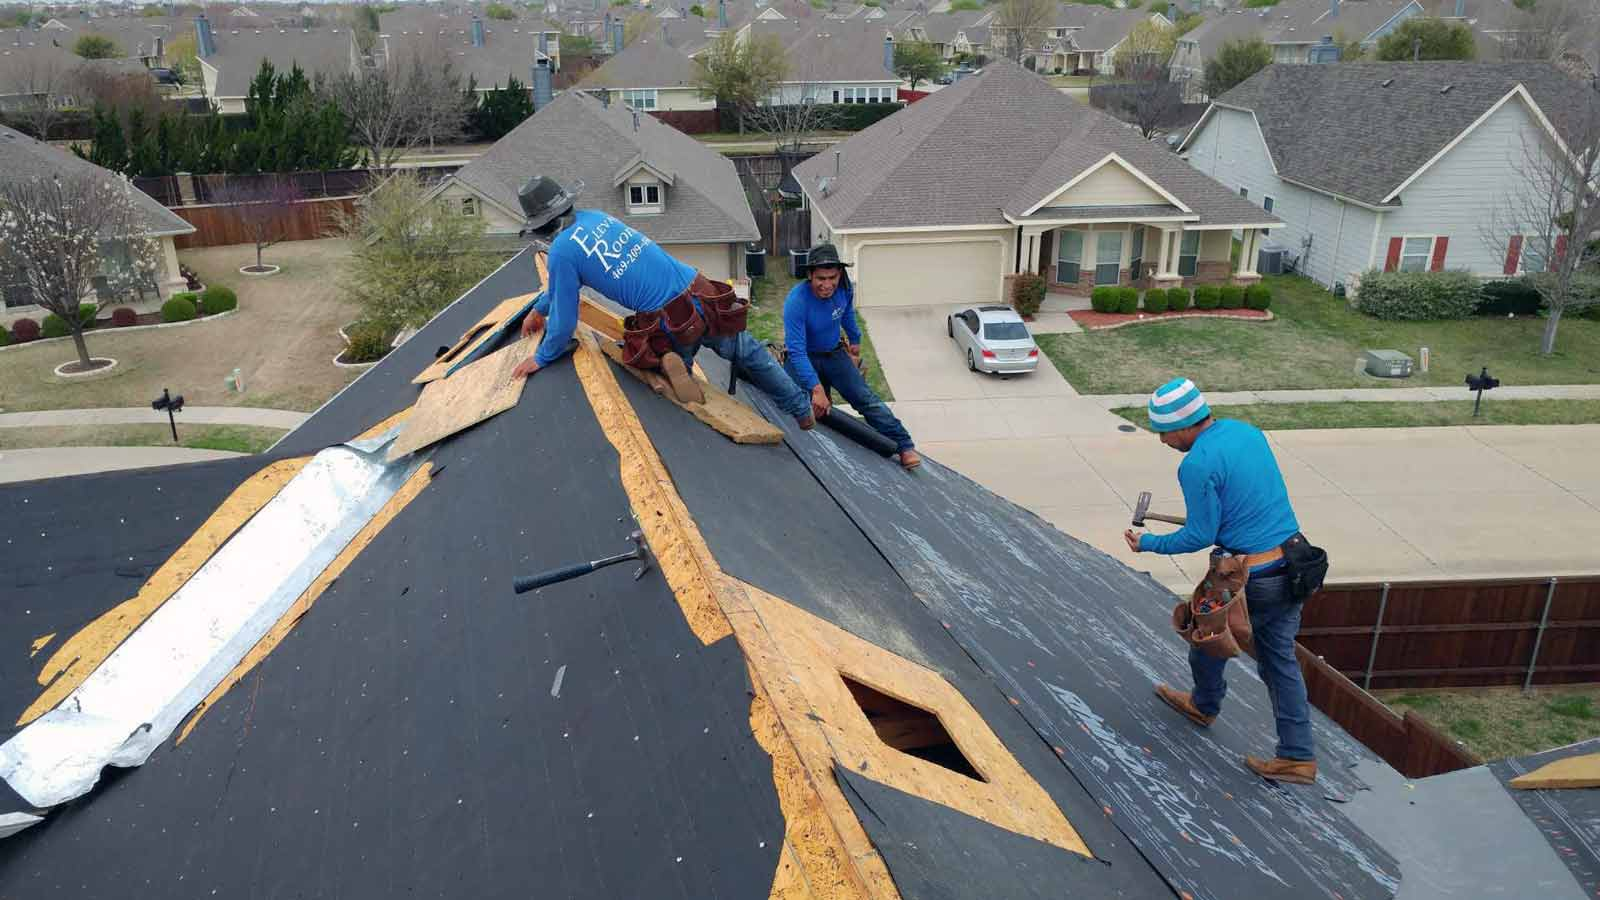 Elevated Roofing – Roof Replacement & Repair | Colleyville and Frisco Area, Texas